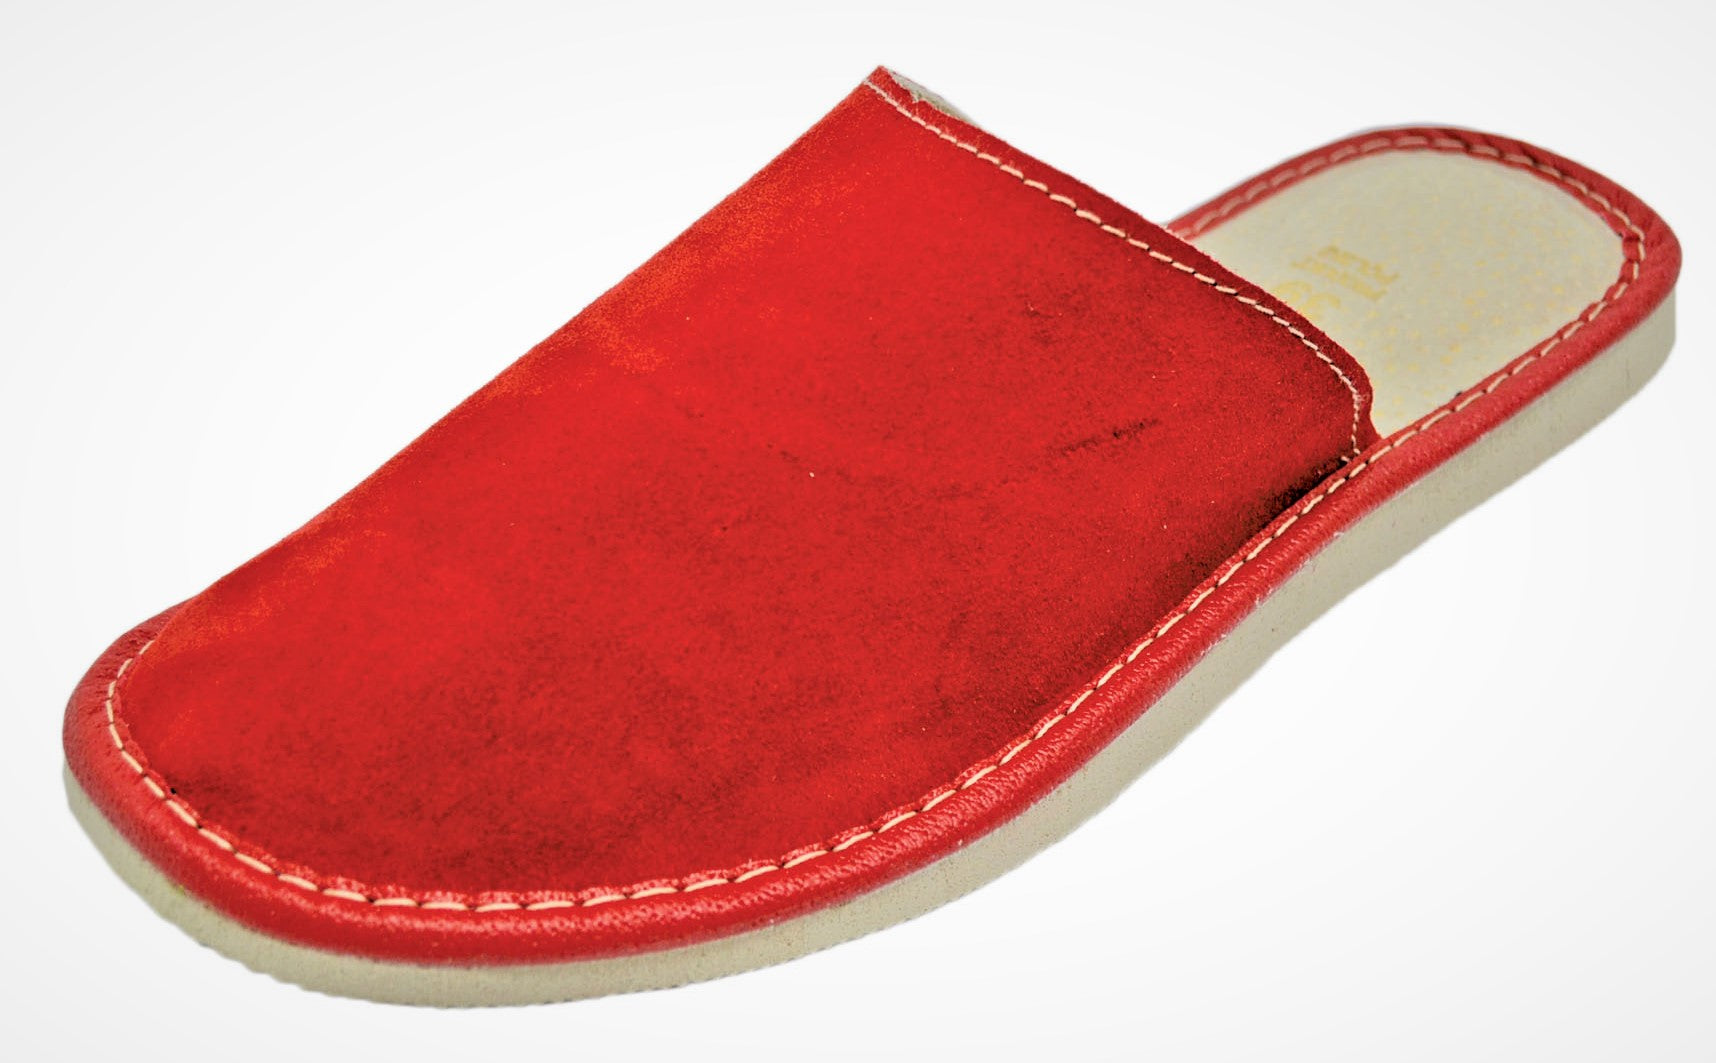 Ceries Womens Red Slippers I Suede Scuffs Reindeer Leather Reindeer Leather